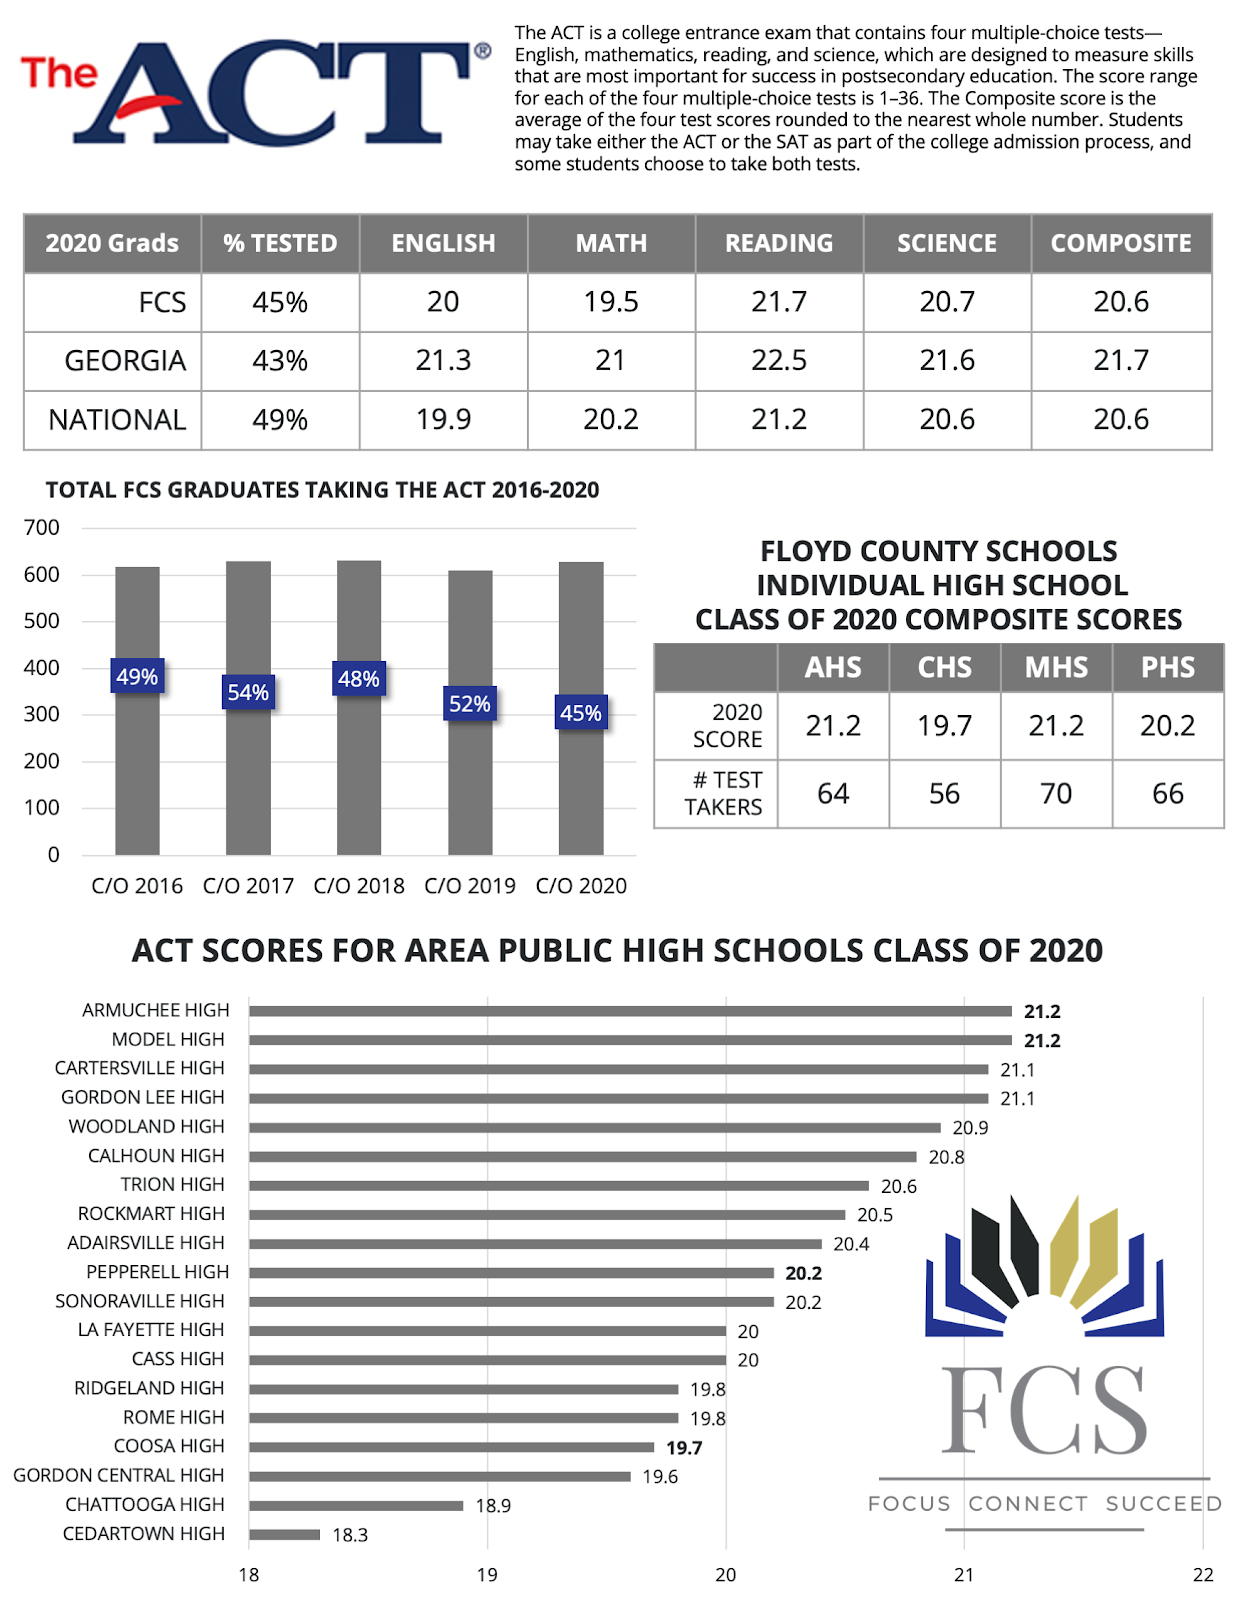 Armuchee High and Model High Lead Area ACT Scores, Pepperell High Among Top Ten